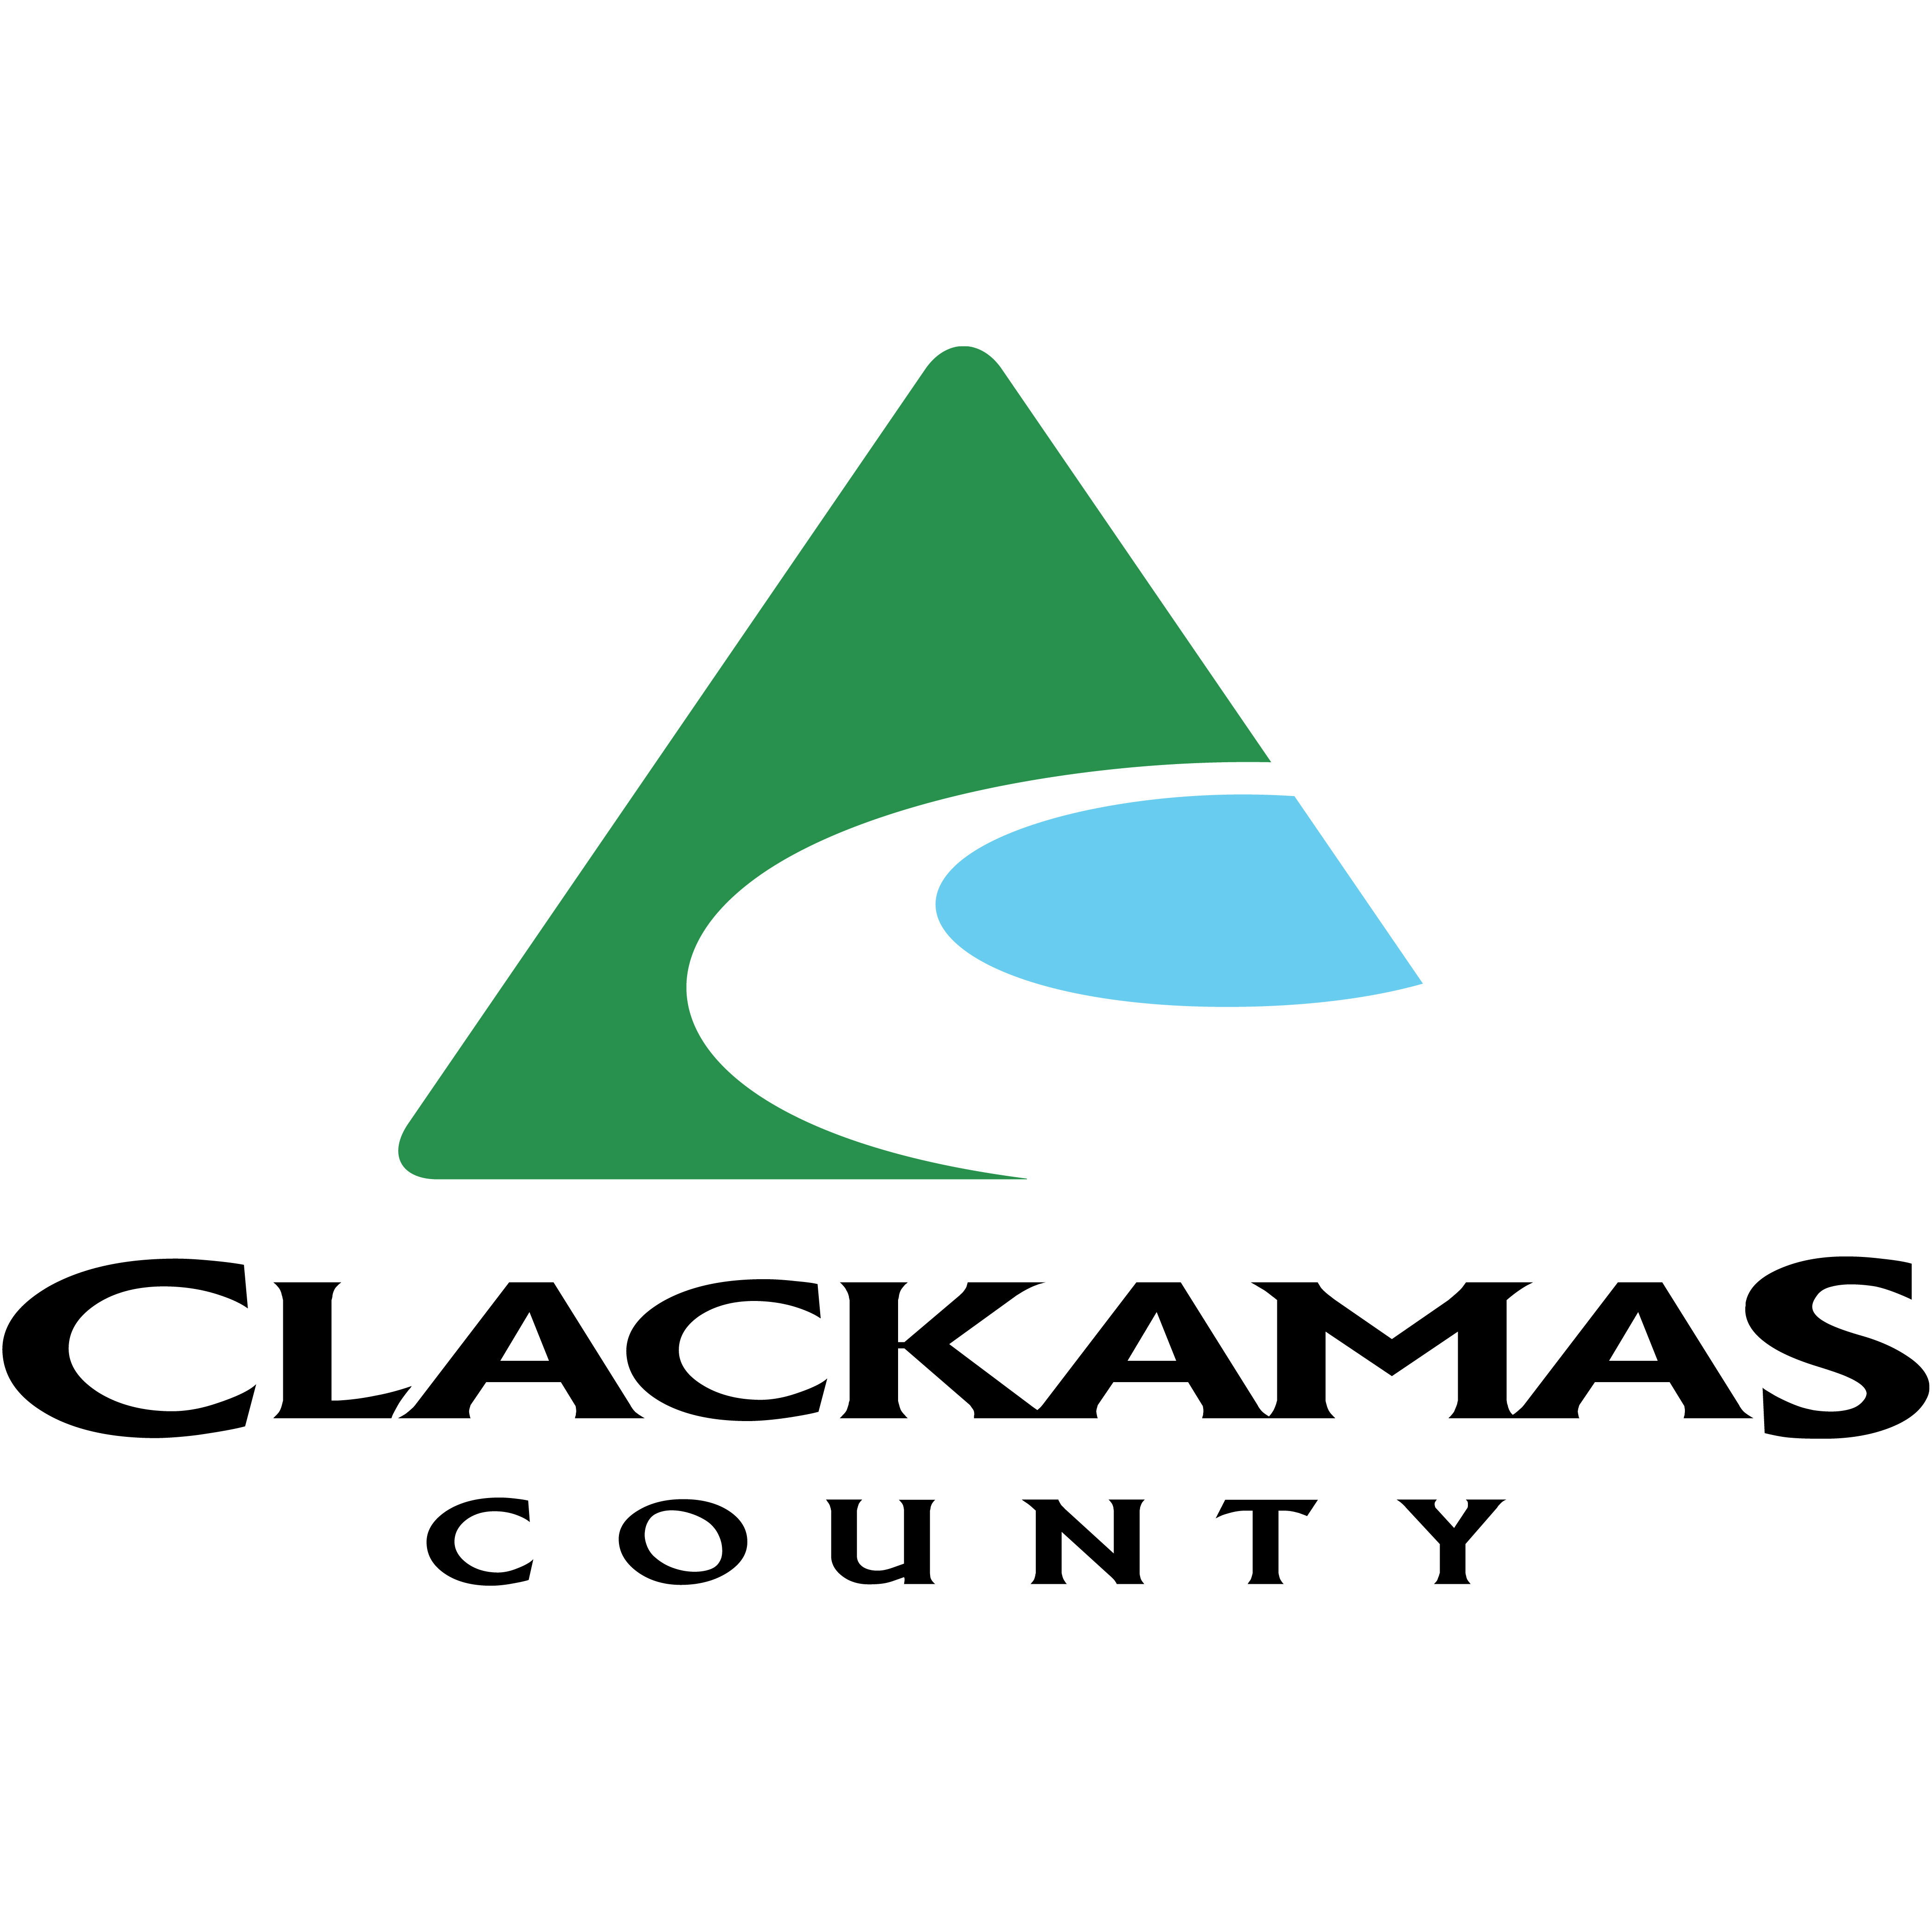 Clackamas County Ice Storm Cleanup Voucher logo